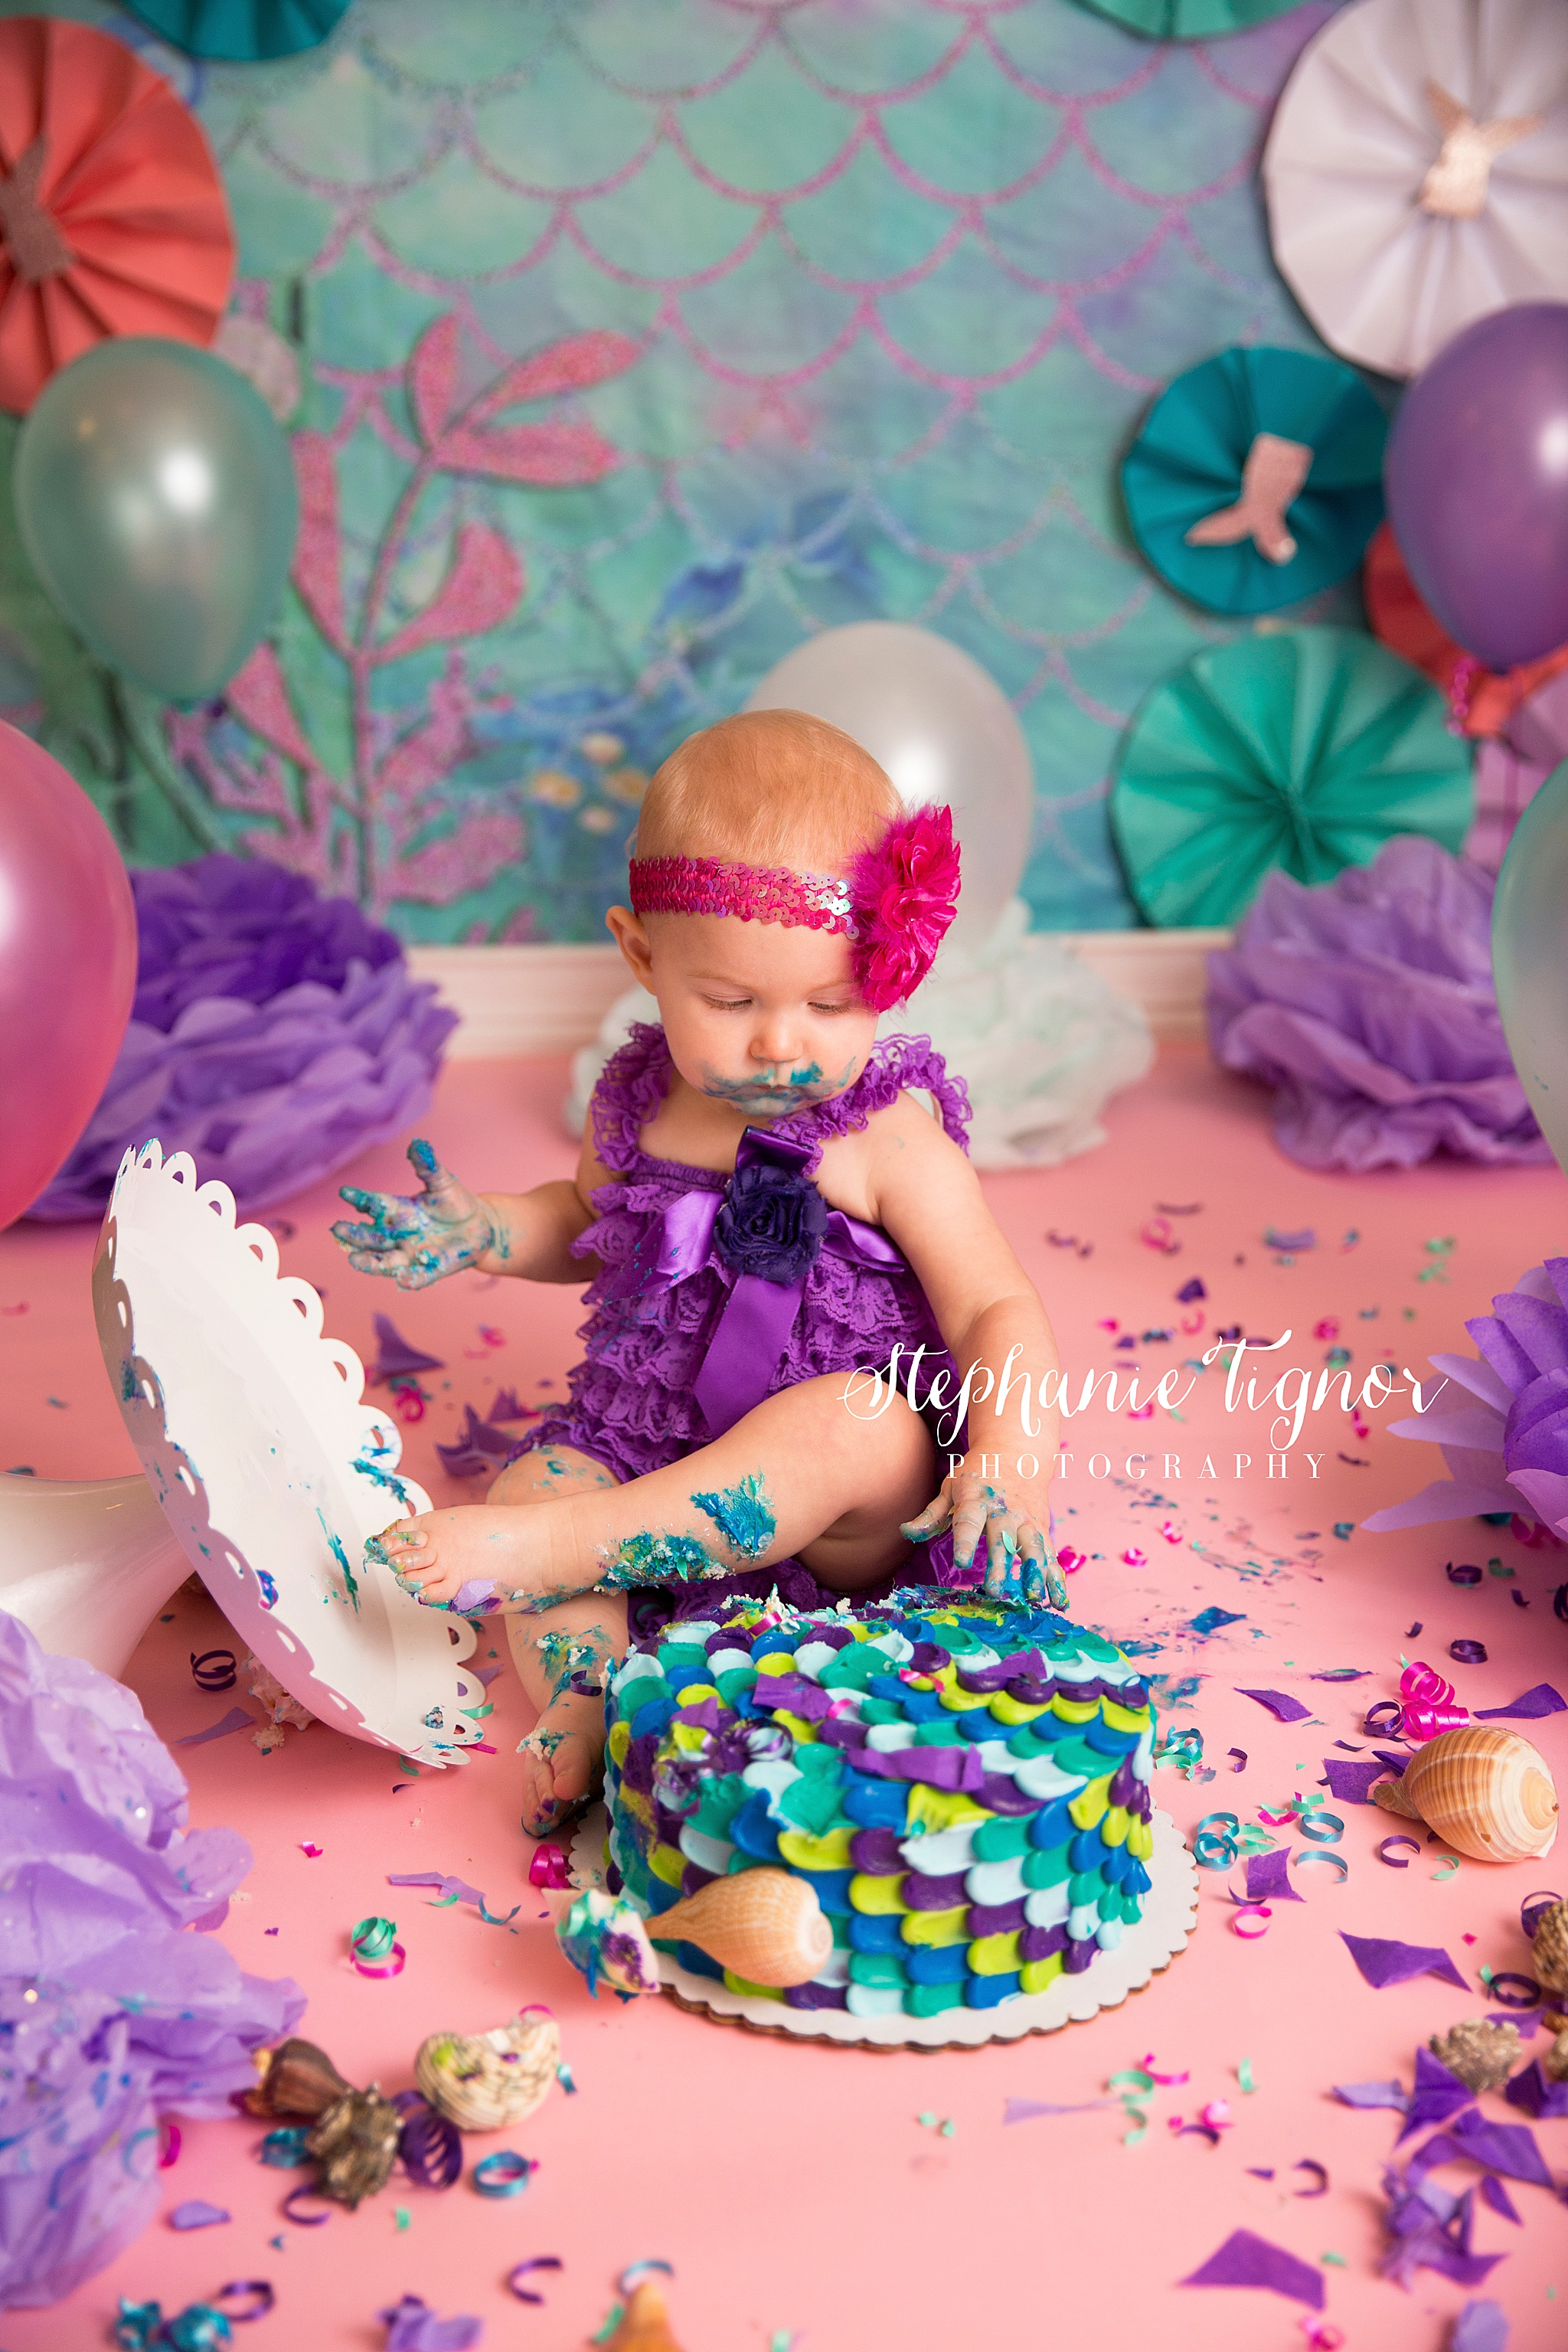 Stephanie Tignor Photography_Cake Smash_0089.jpg